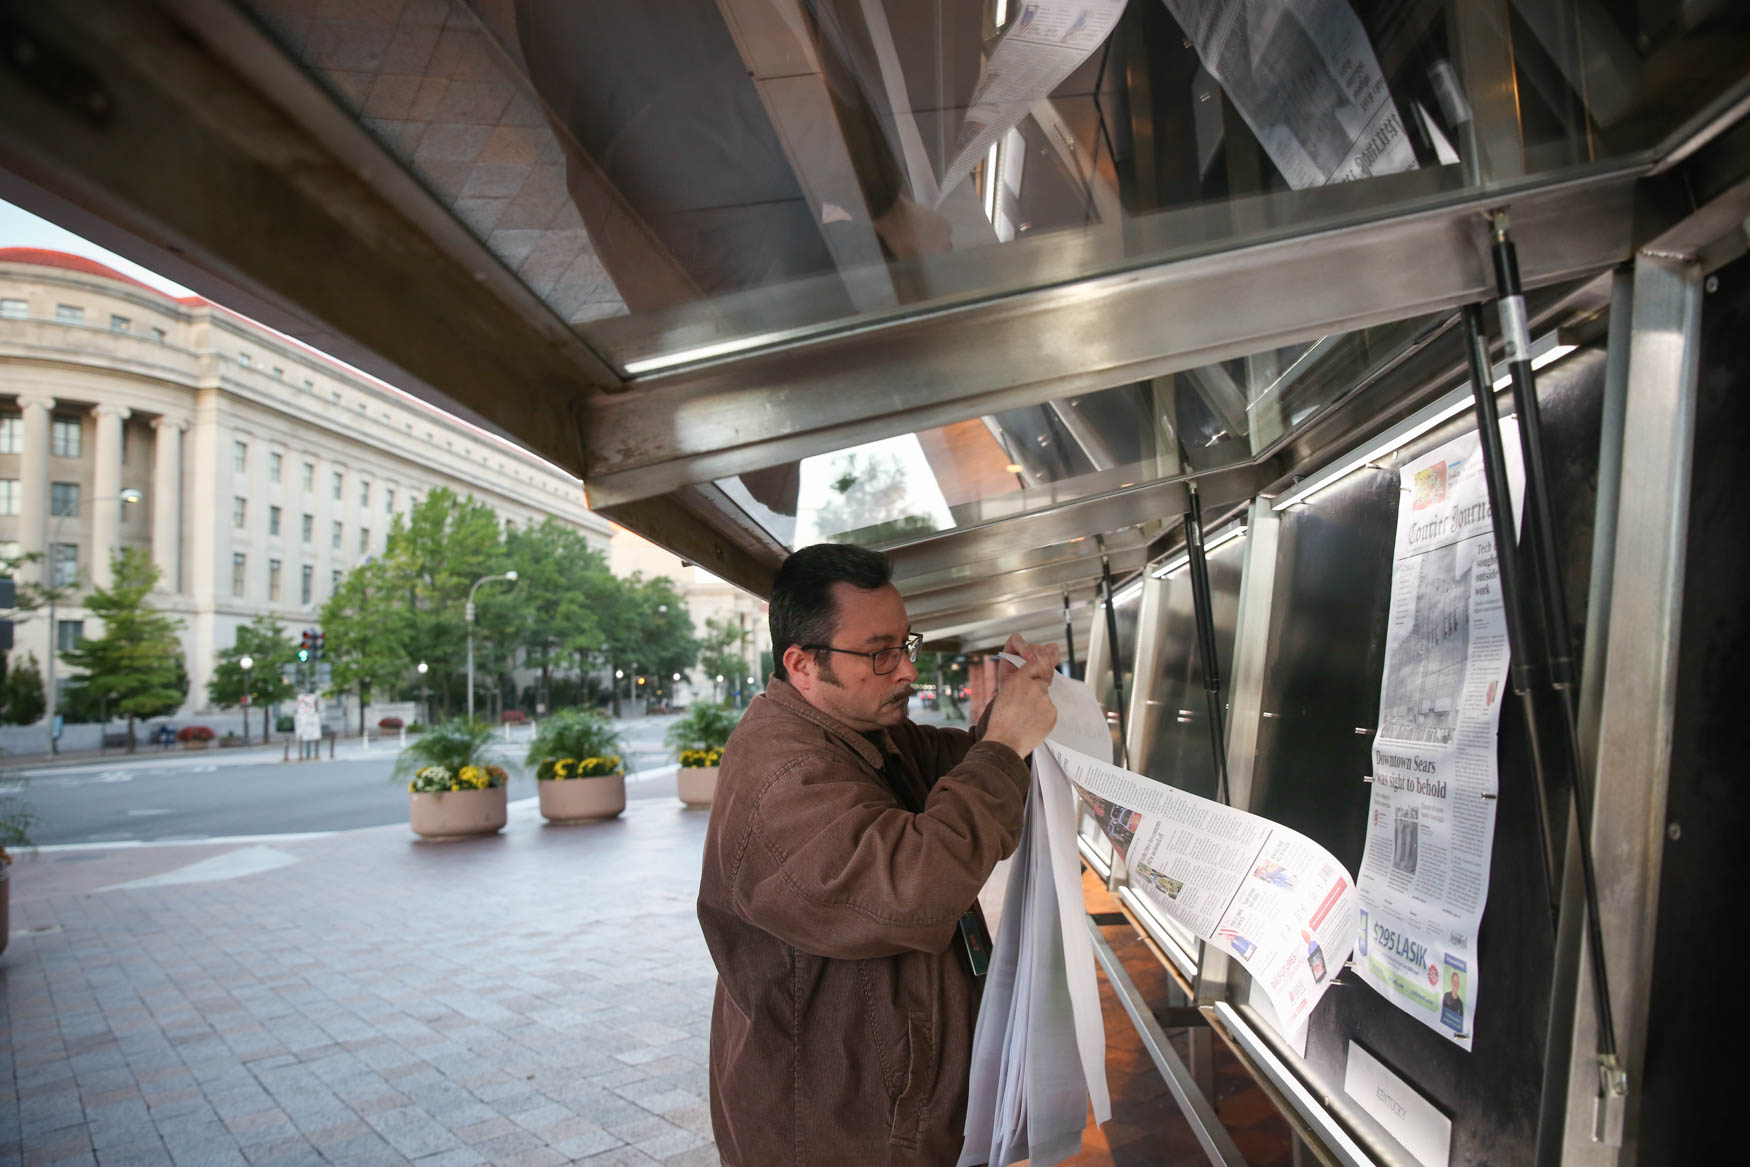 Machado and his team put the newspapers outside at around 8:00 a.m.{ }(Amanda Andrade-Rhoades/DC Refined)